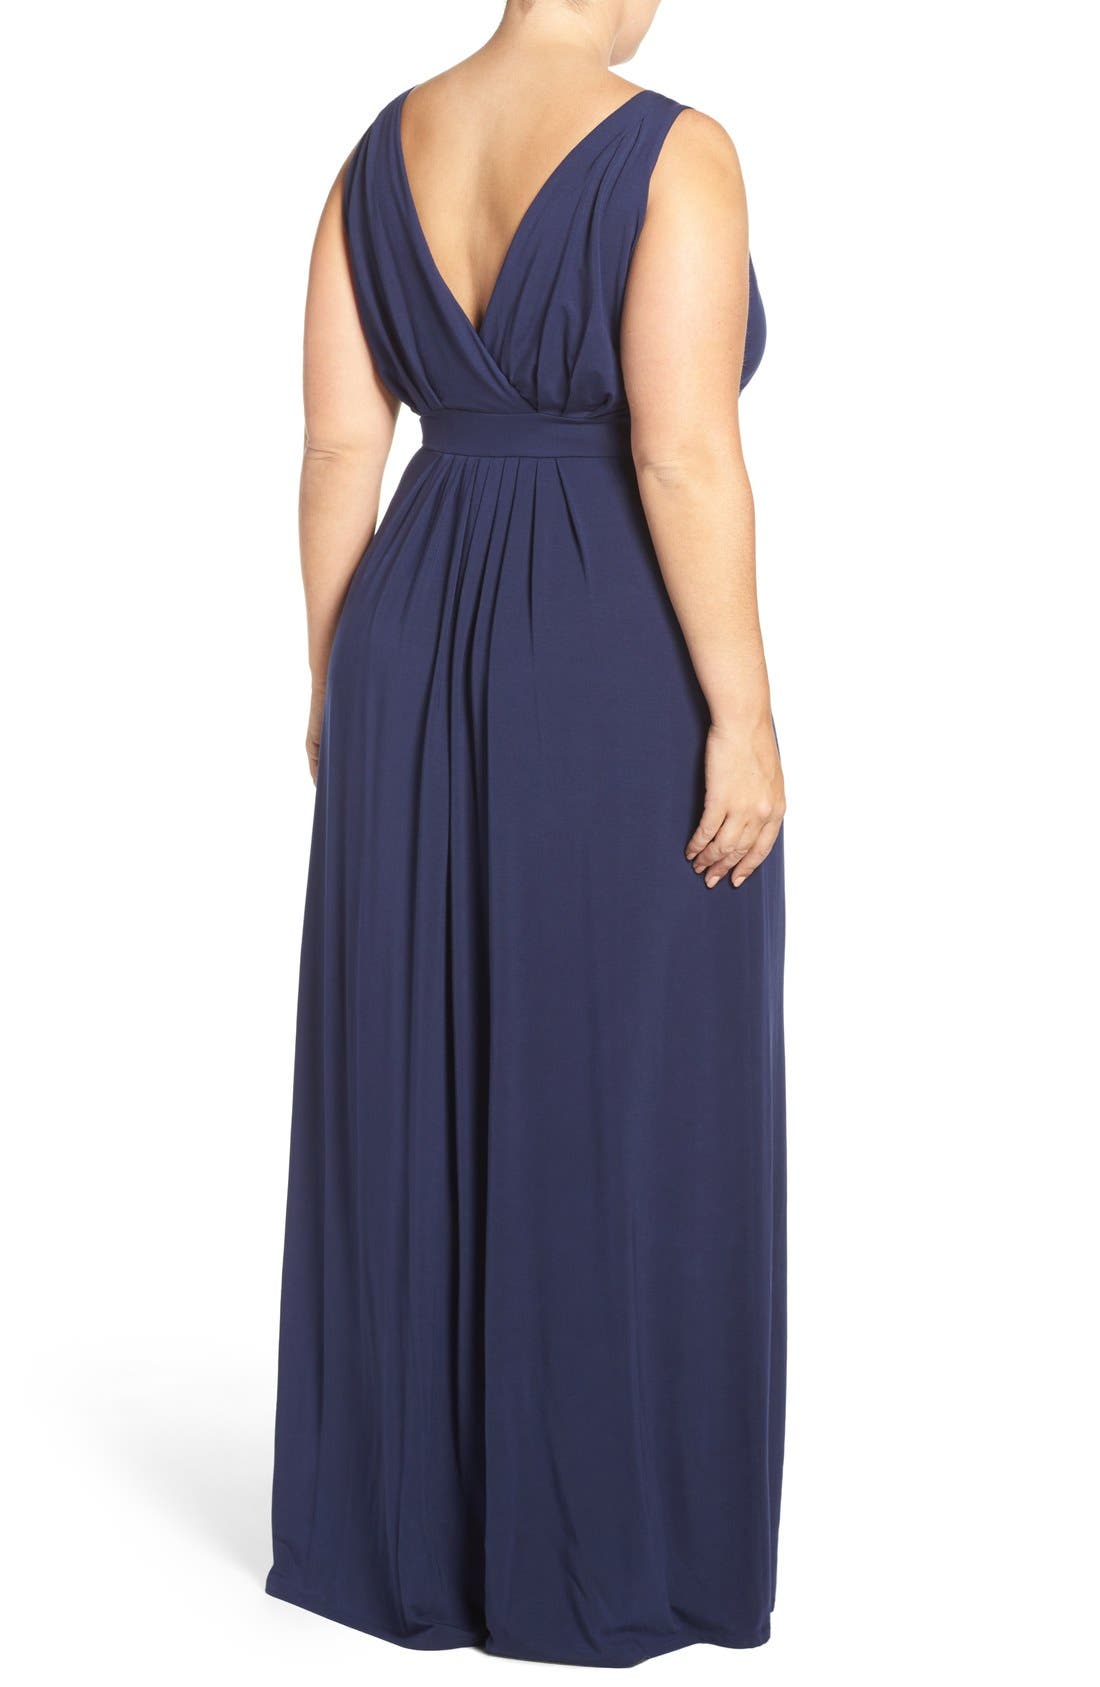 Chloe Empire Waist Maxi Dress,                             Alternate thumbnail 32, color,